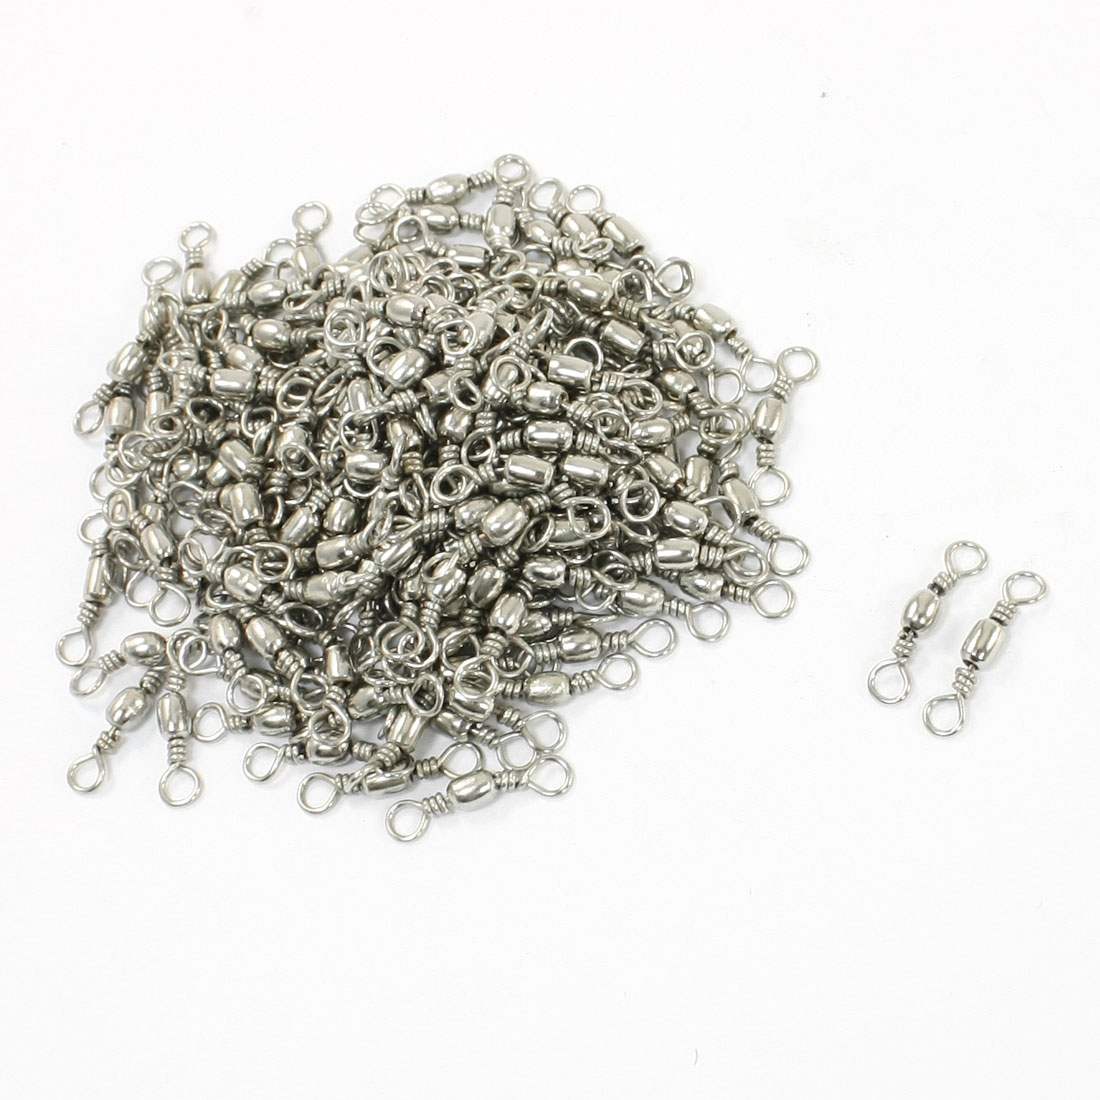 200 Pcs Silver Tone Metal Fishing Line to Hook Connectors 9#